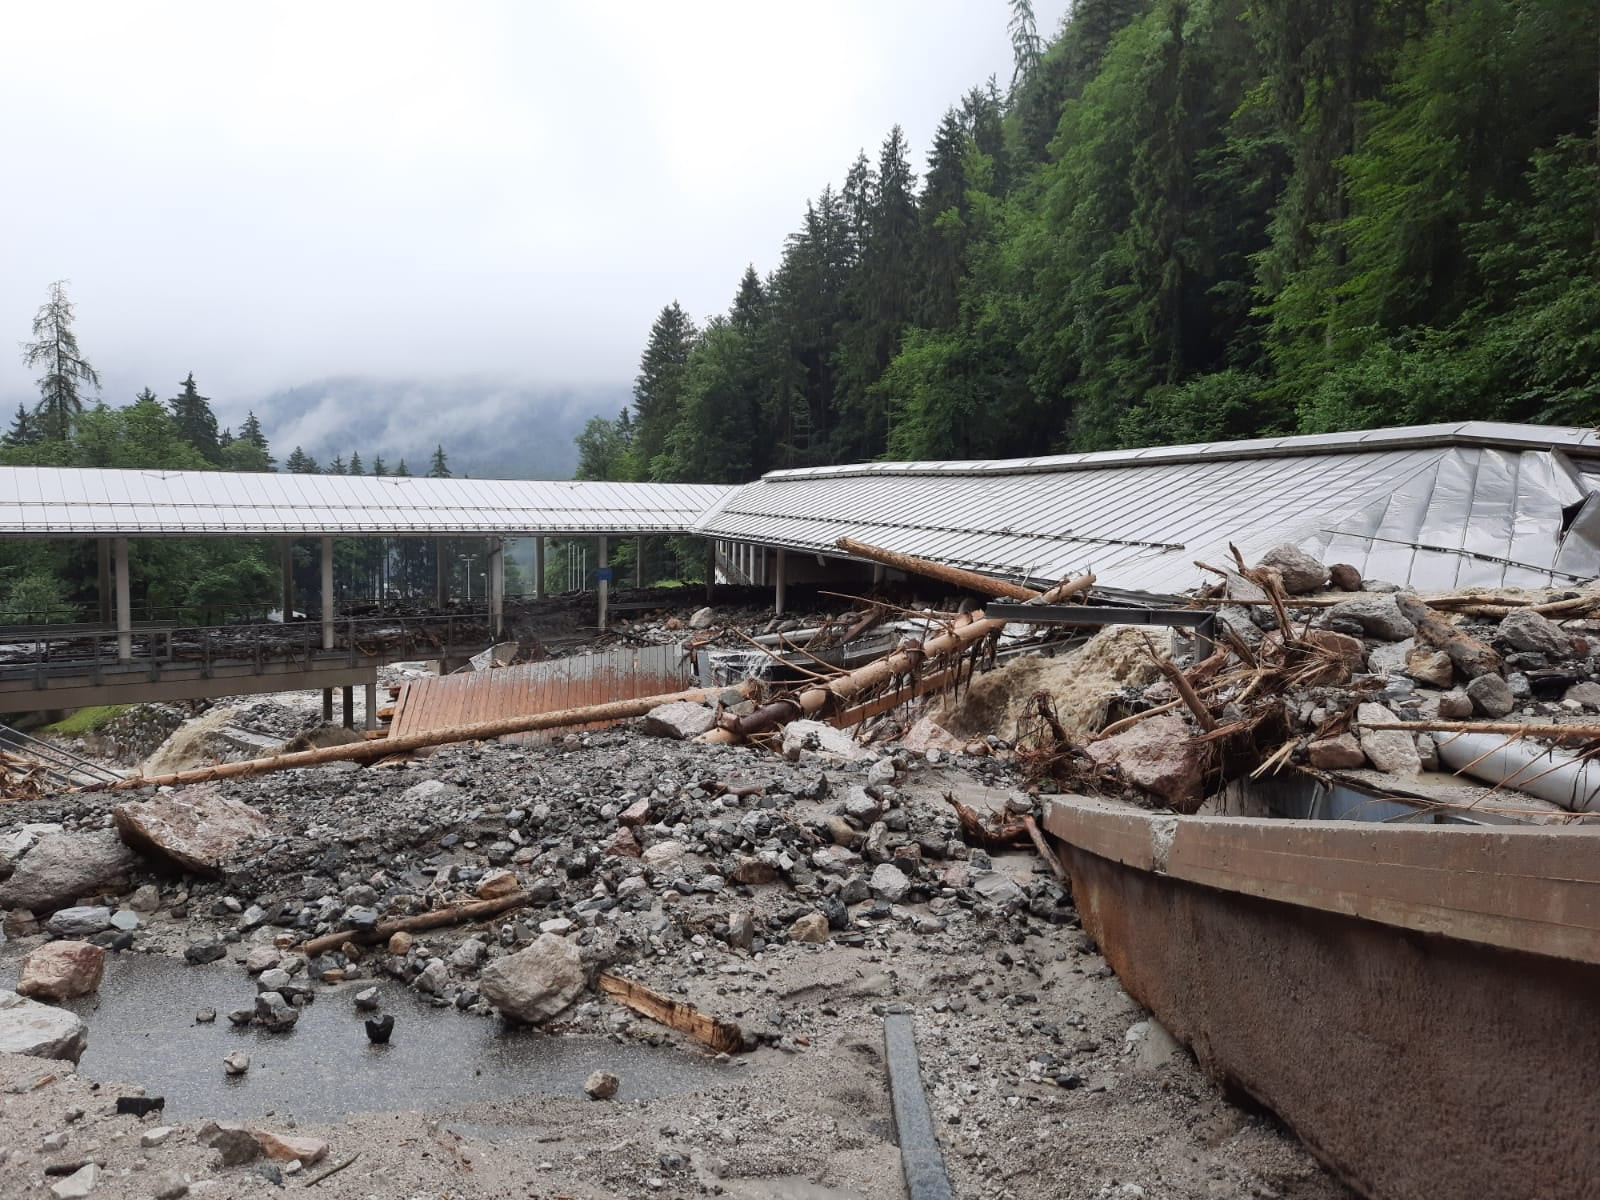 Iconic Königssee sliding track wrecked in deadly German floods